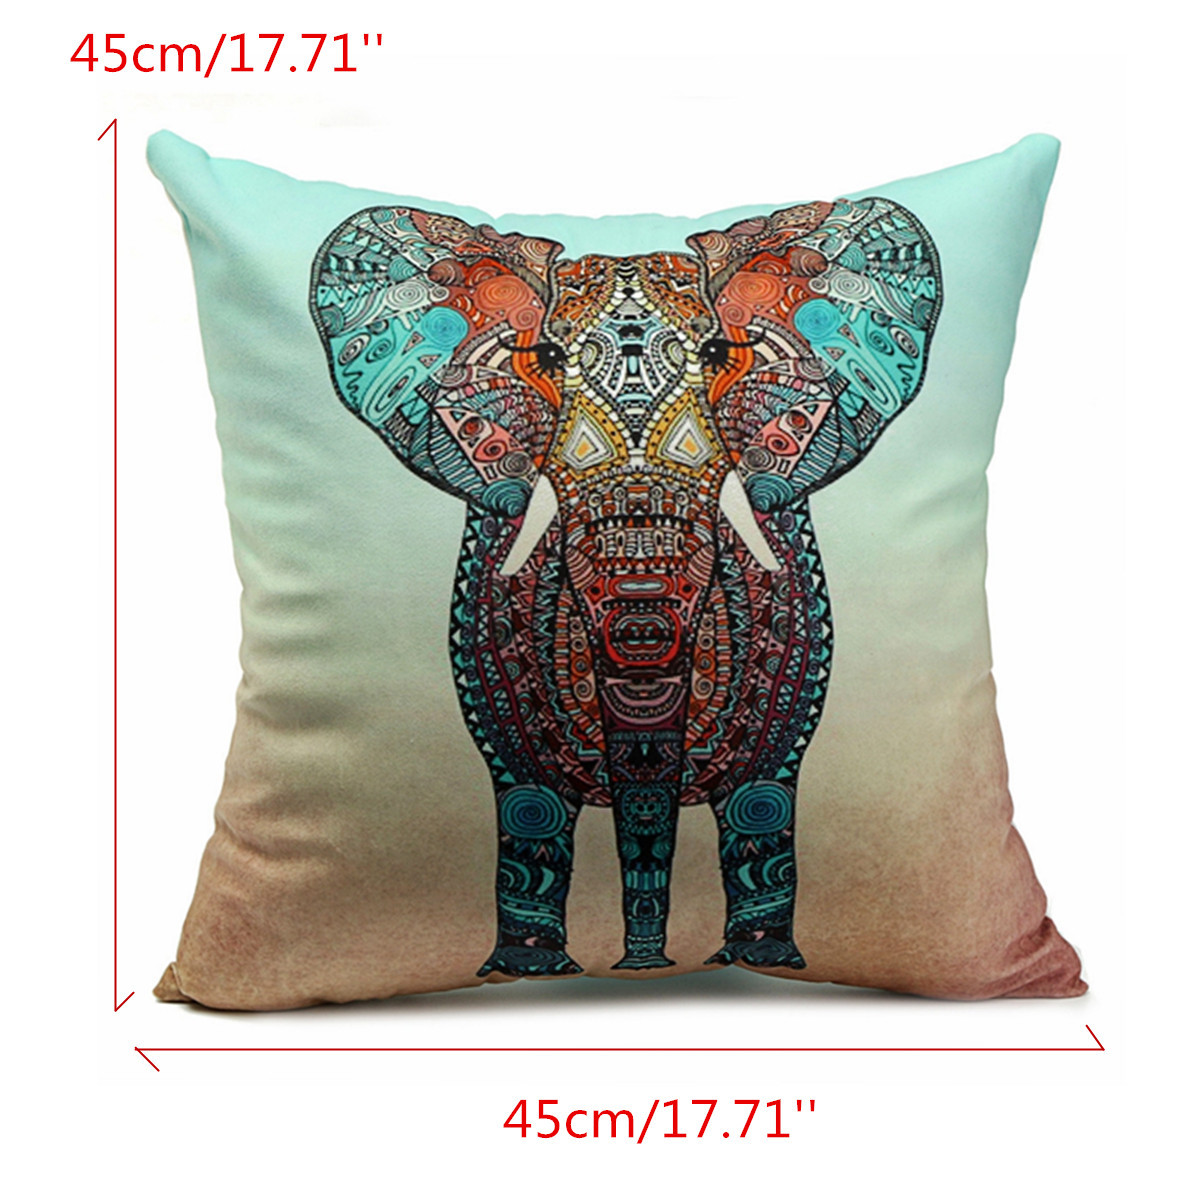 Colorful Pillows For Sofa: Velvet Colorful Elephant Throw Pillow Case Cushion Cover